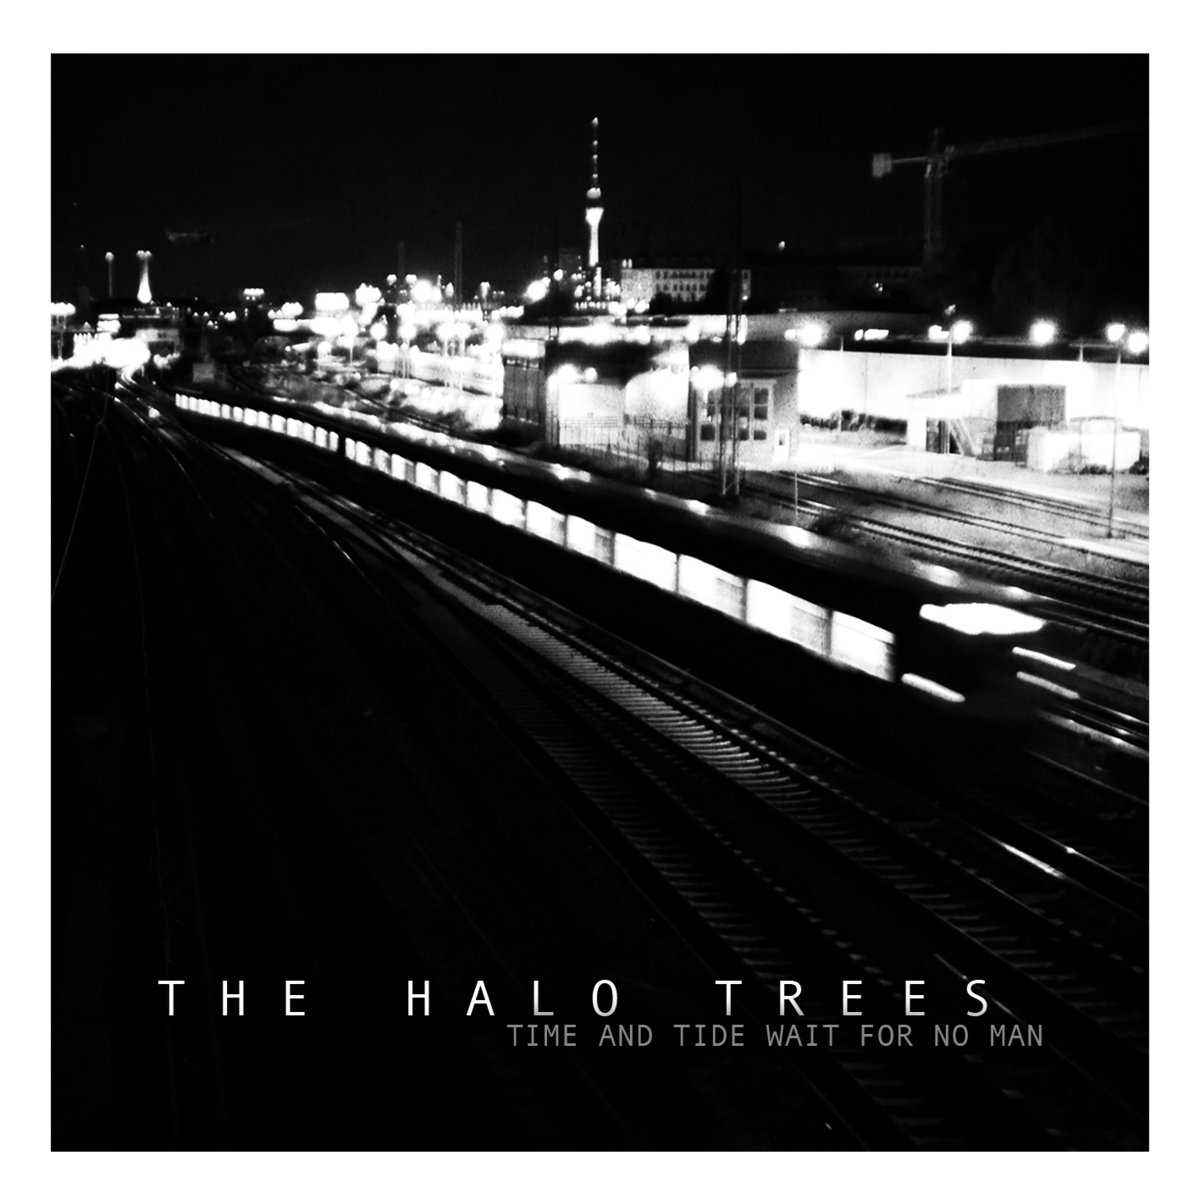 Hours Pass In Vain The Halo Trees